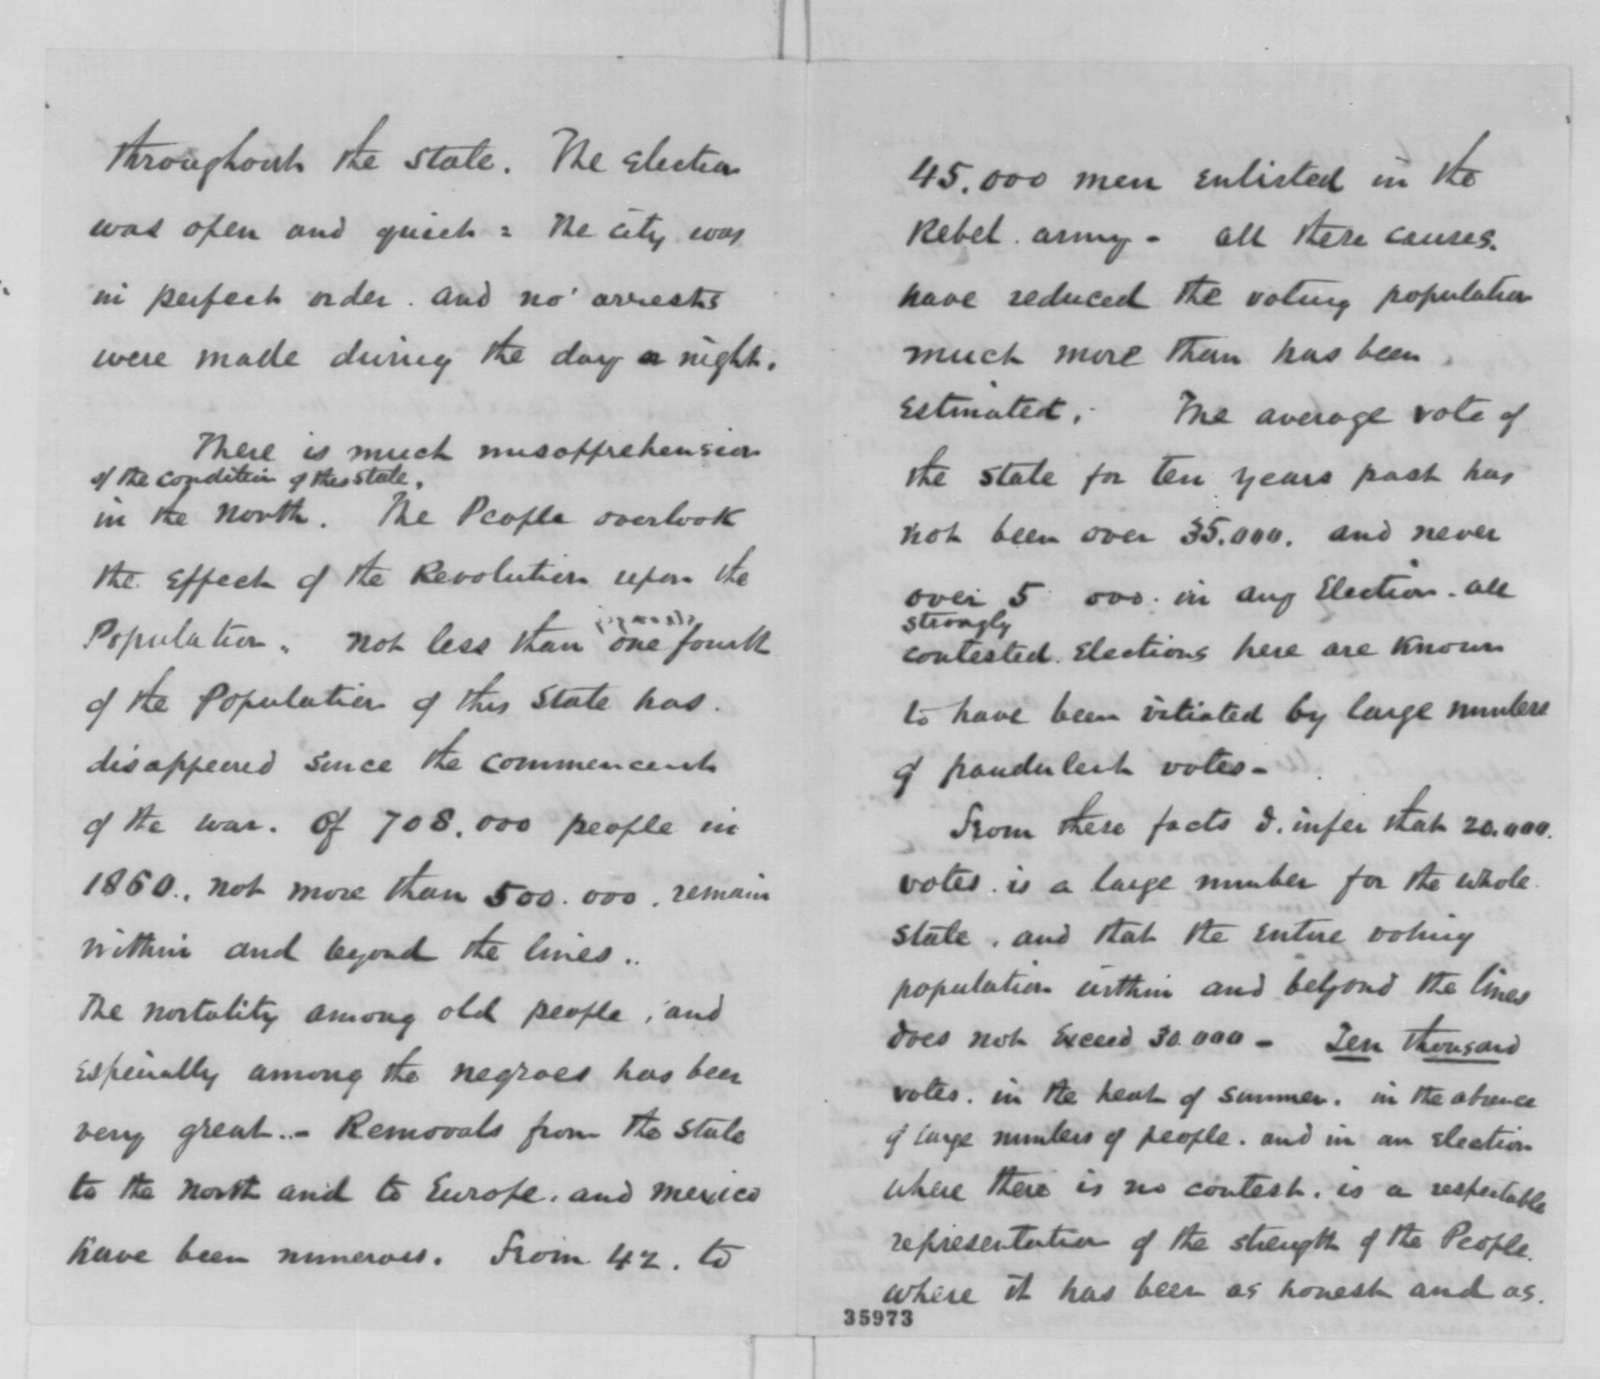 Nathaniel P. Banks to Abraham Lincoln, Tuesday, September 06, 1864  (Ratification of Louisiana constitution)